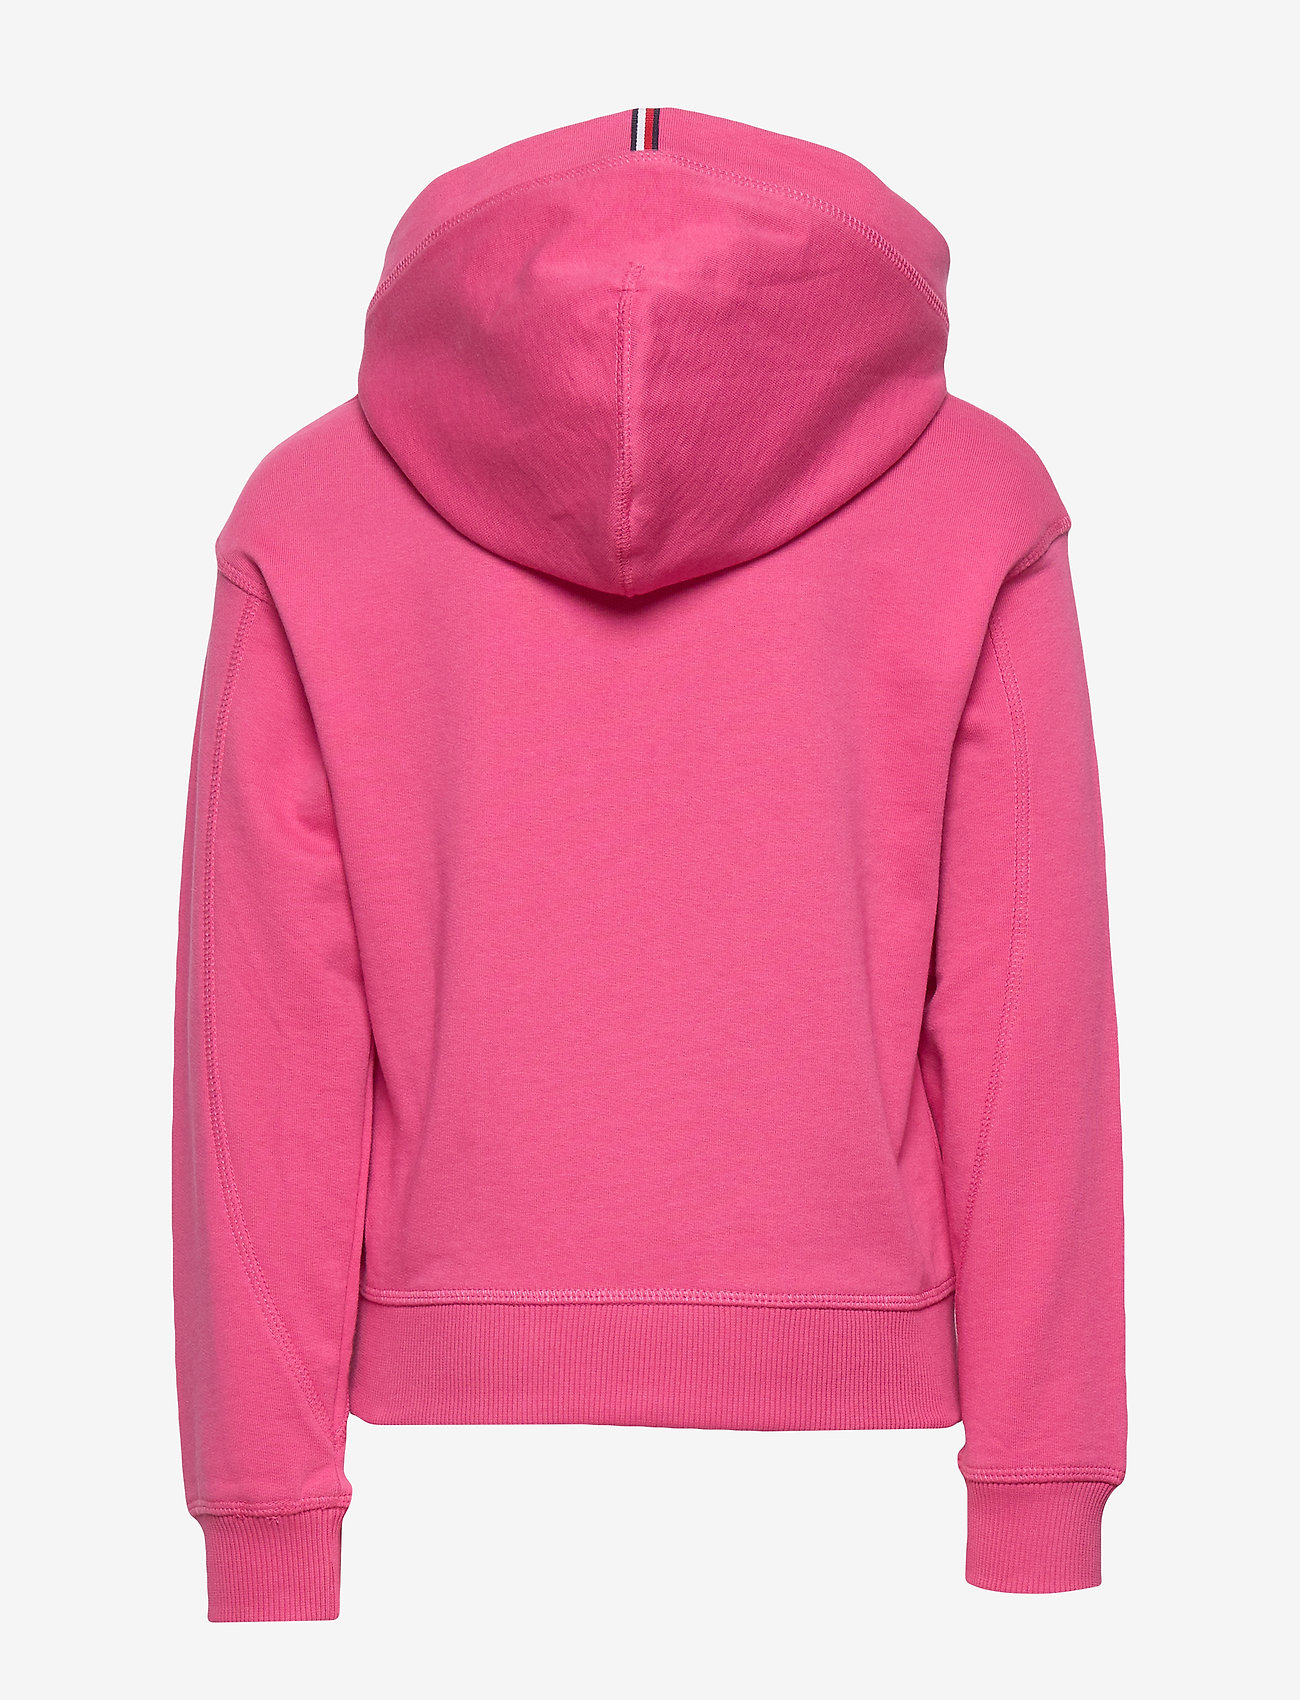 Tommy Hilfiger - ESSENTIAL HOODED SWE - hoodies - blush red